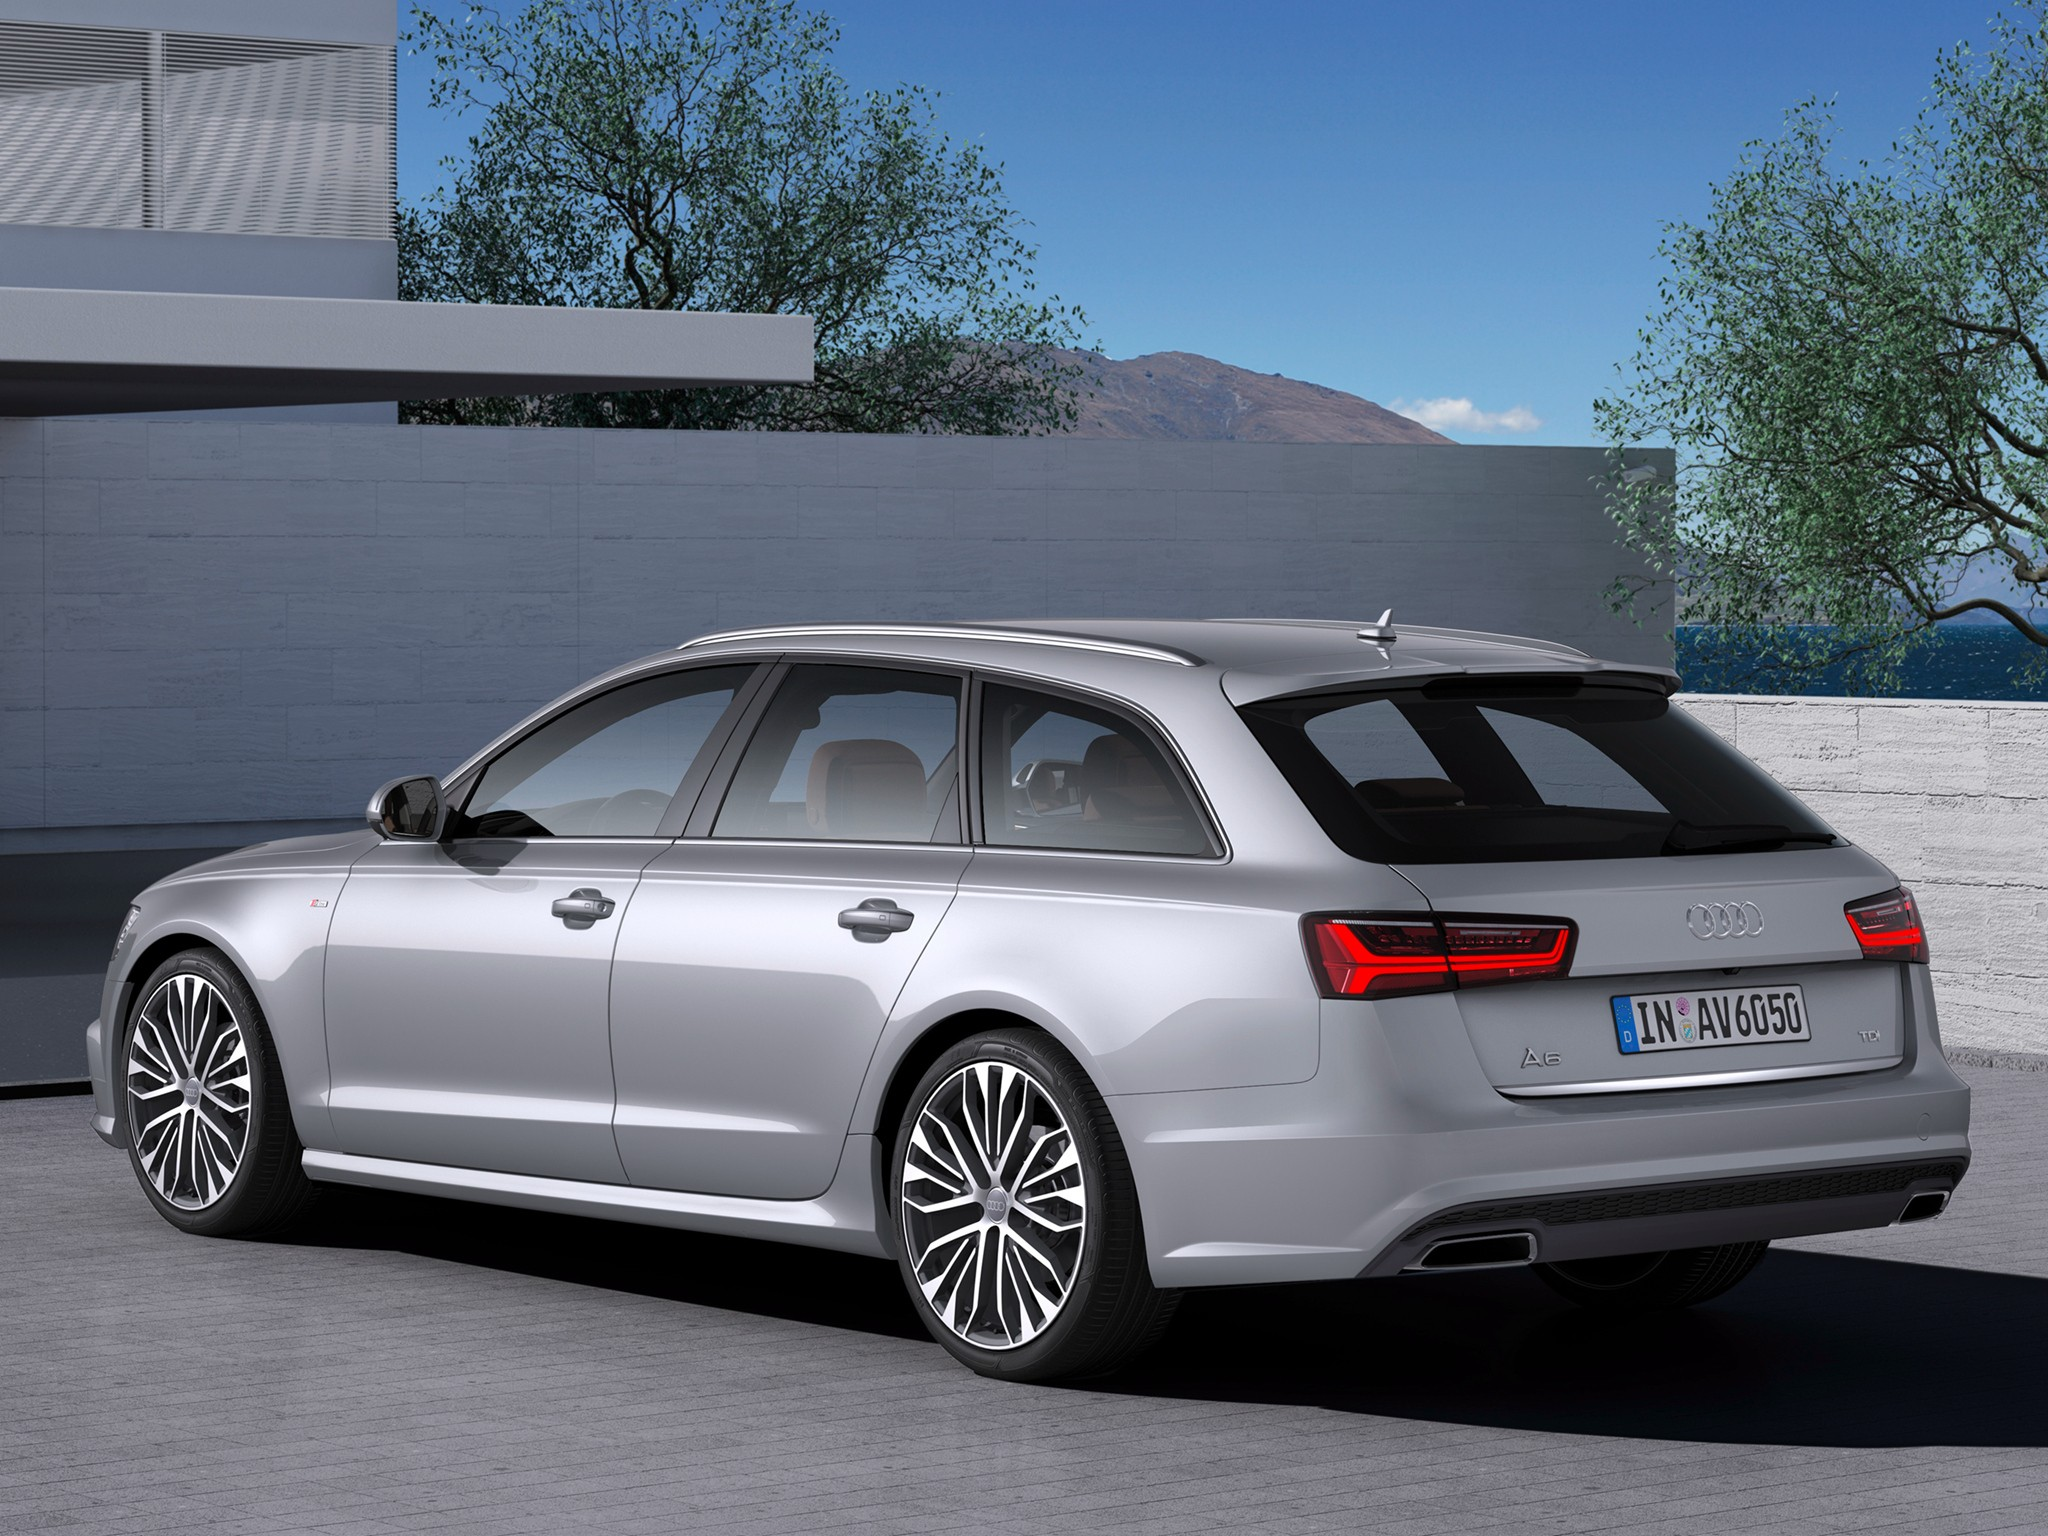 audi a6 avant specs 2014 2015 2016 2017 2018 autoevolution. Black Bedroom Furniture Sets. Home Design Ideas